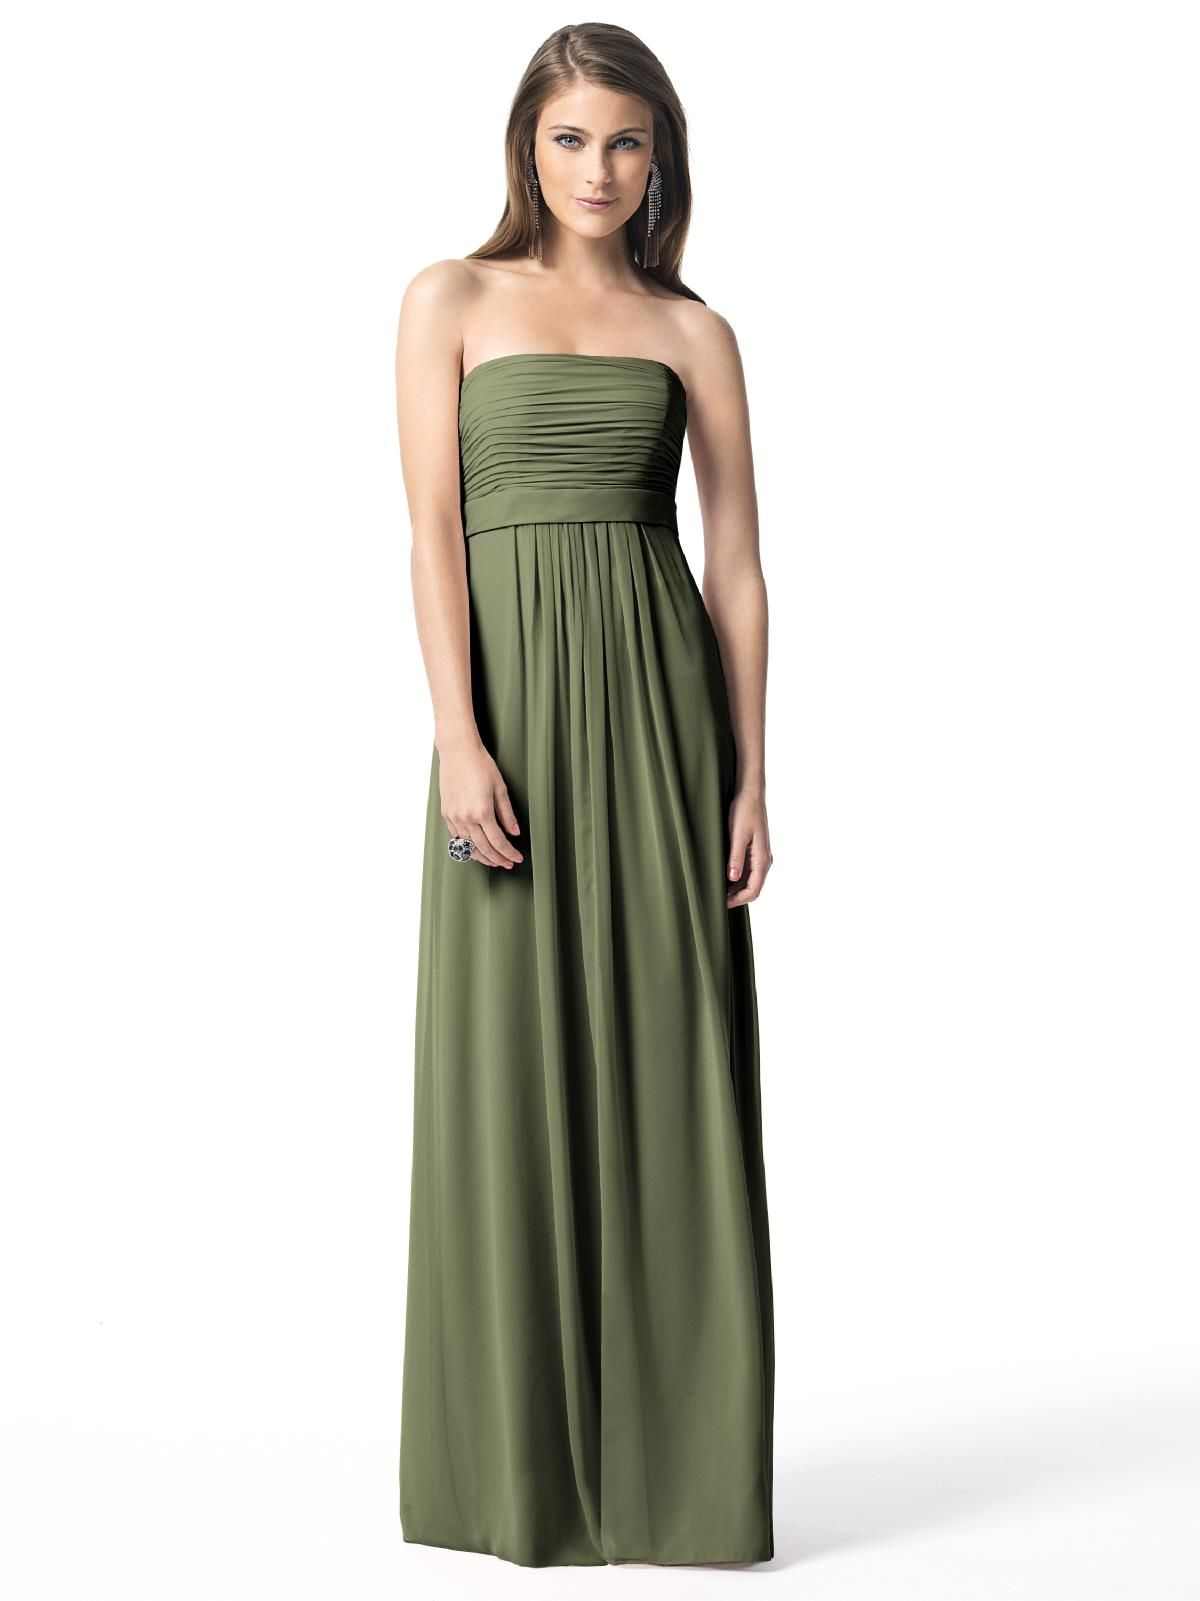 Green dress for wedding  Moss green strapless dress from Dessy This in a deeper mossy green